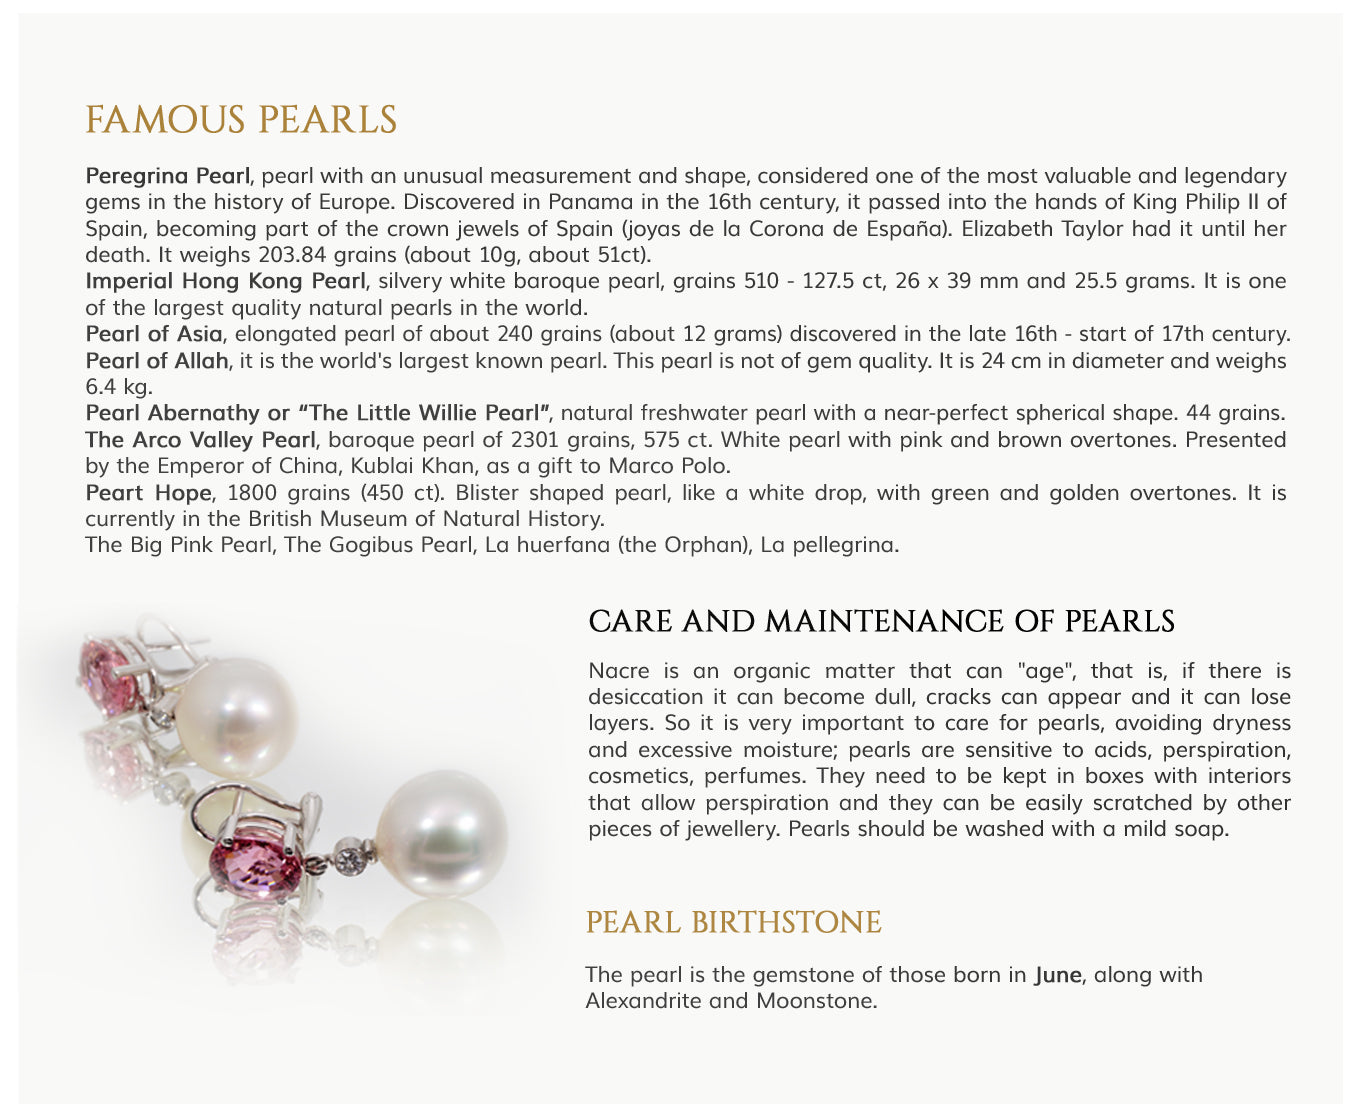 famous pearls care and maintenance